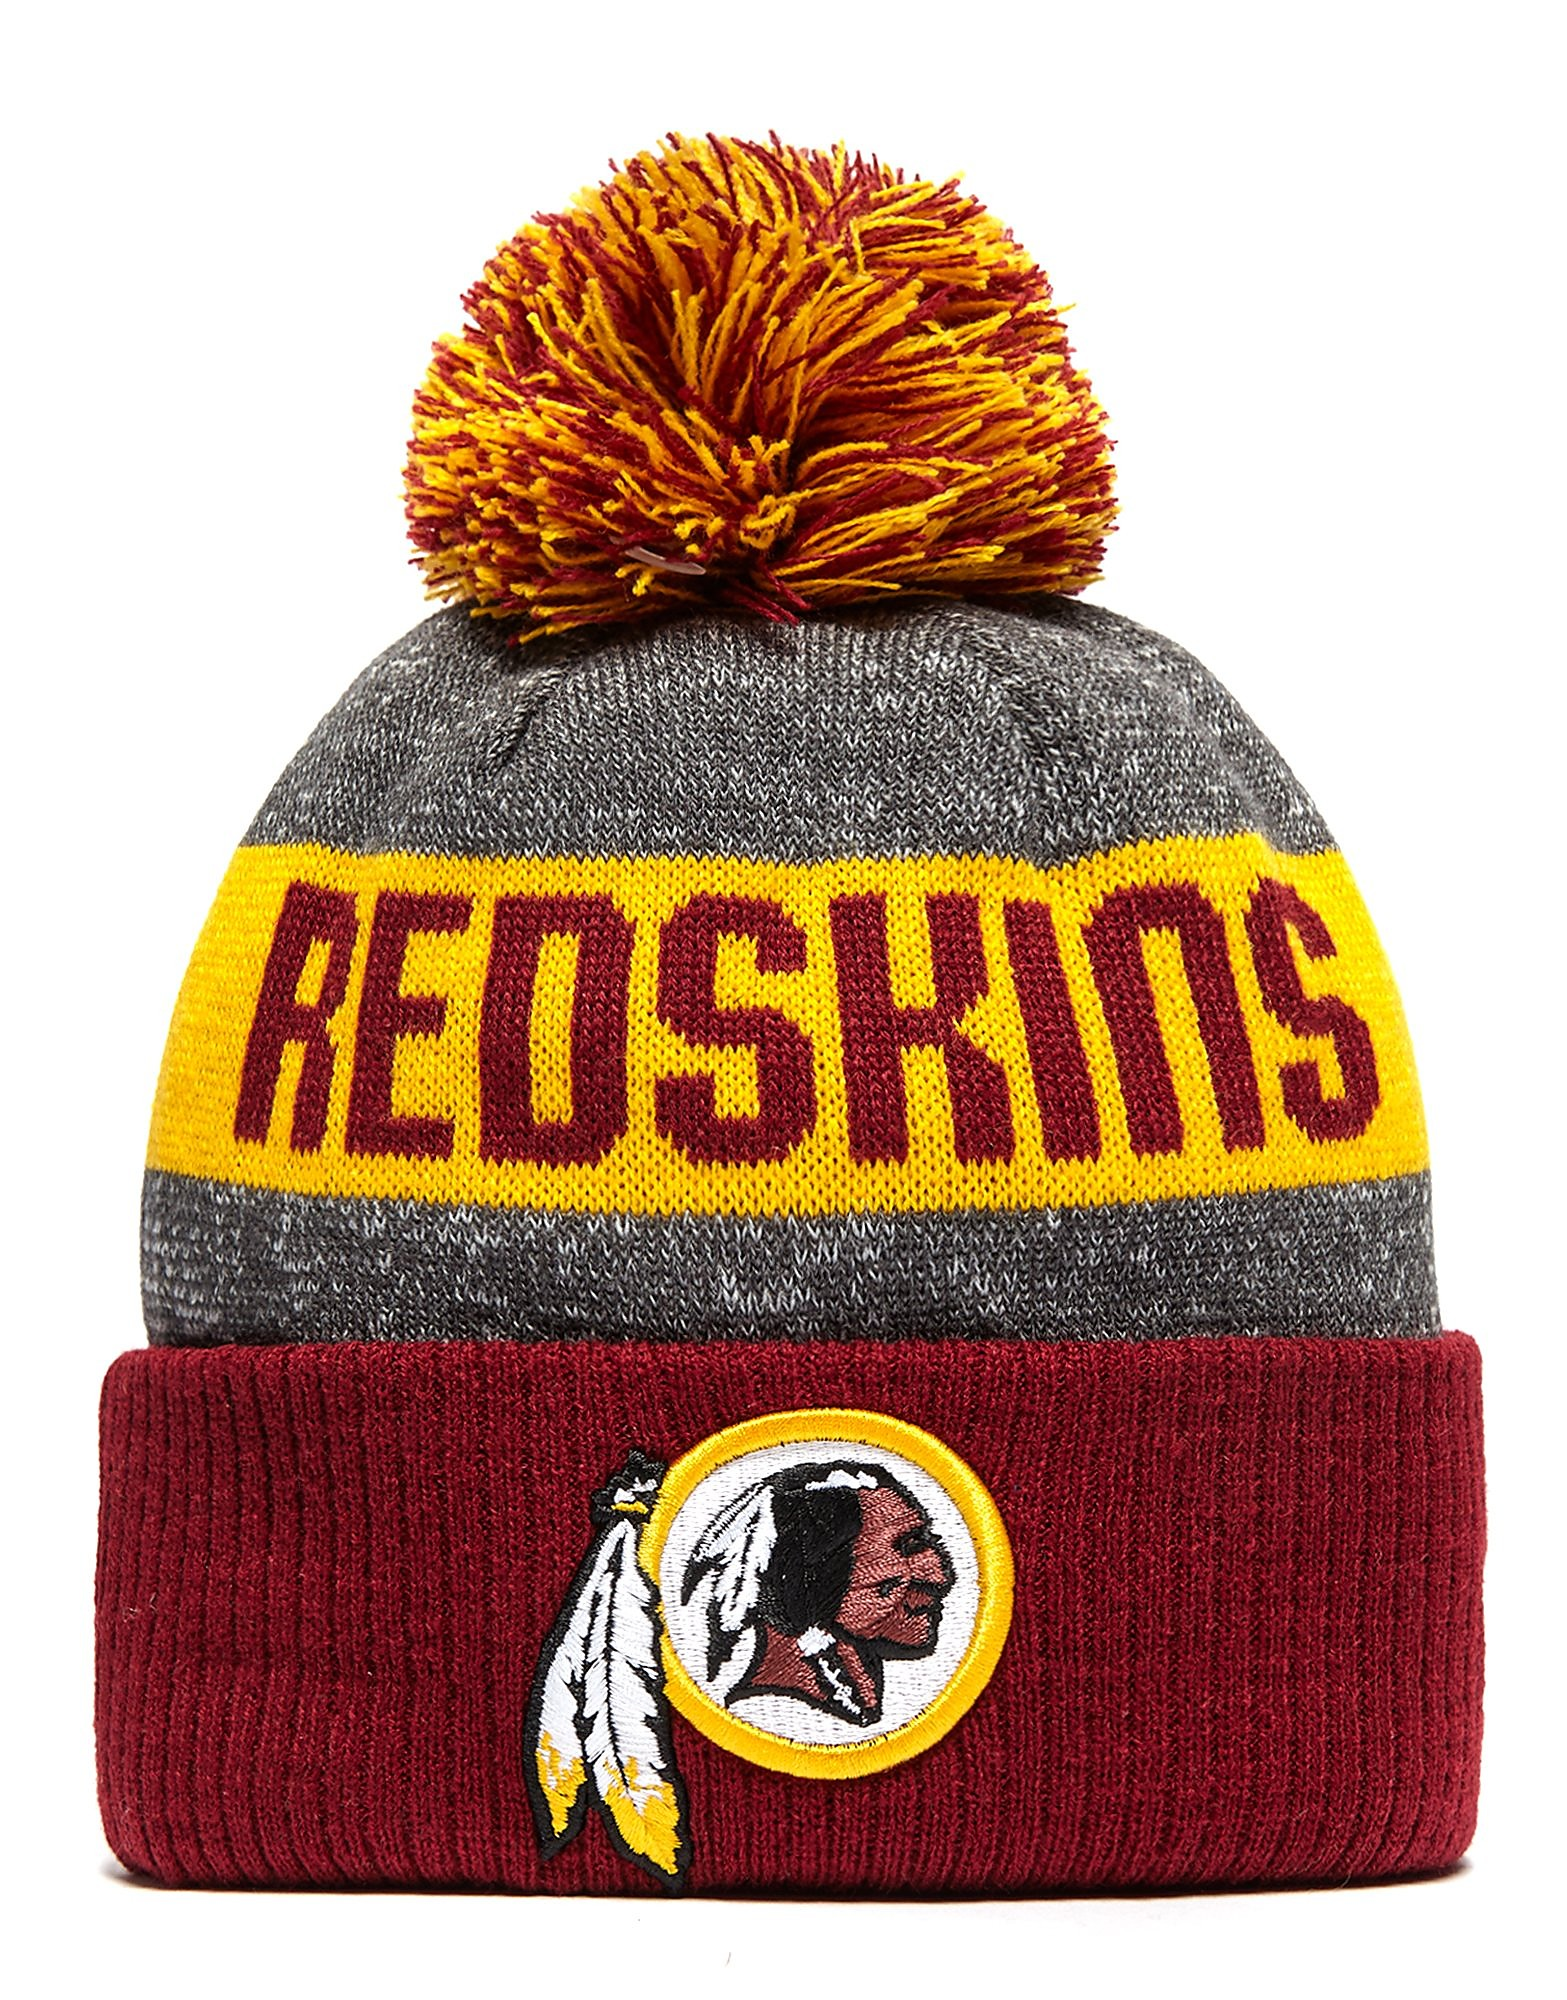 New Era NFL Washington Redskins Pom Beanie